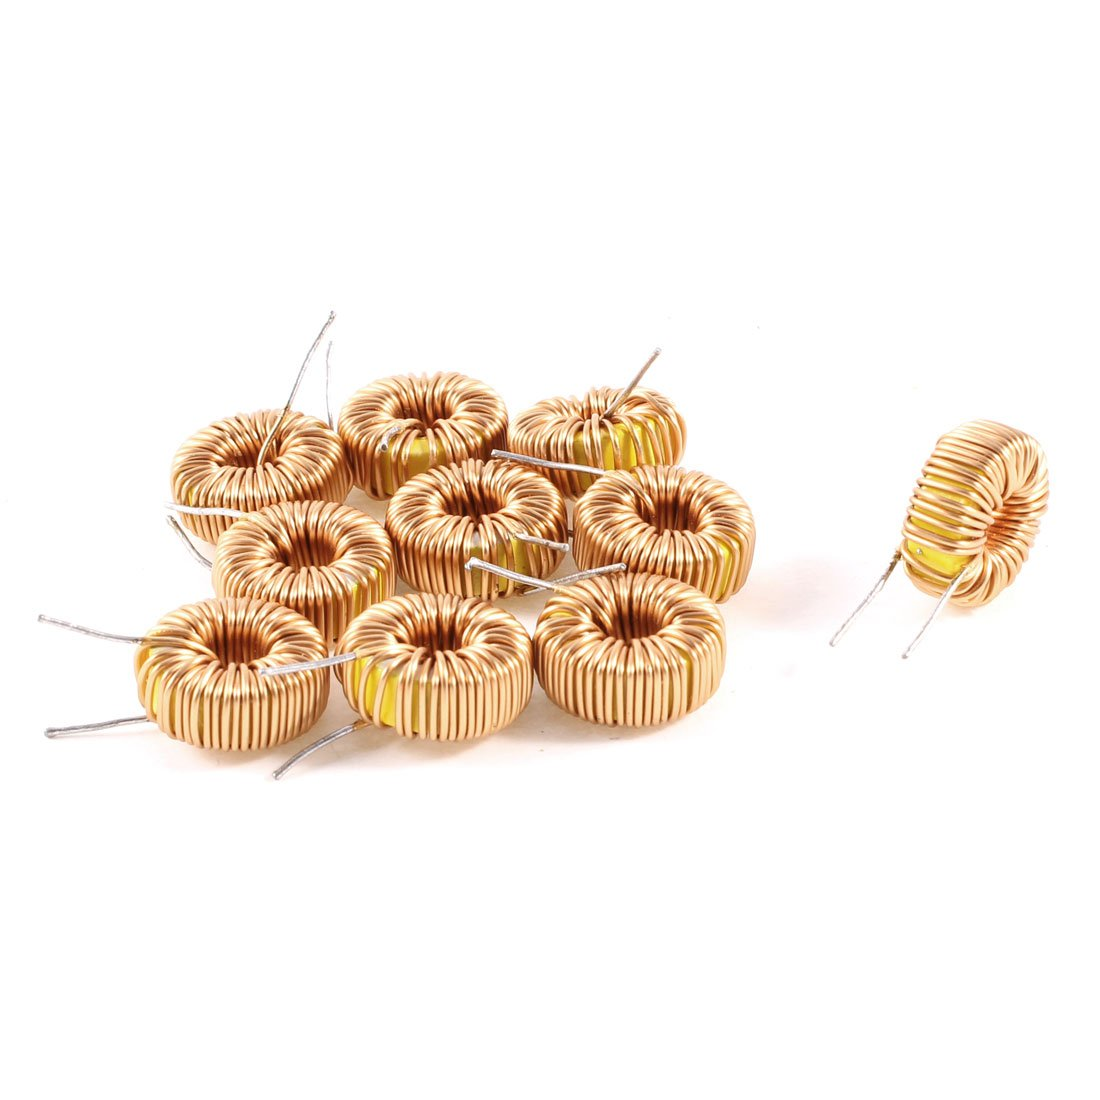 Uxcell A13071500ux0182 10 Piece Toroid Core Inductor Wire Wind Wound Circuit For An Can Be Comprised Of Coils 100uh 81mohm 2 Amp Coil Electronic Inductors Industrial Scientific